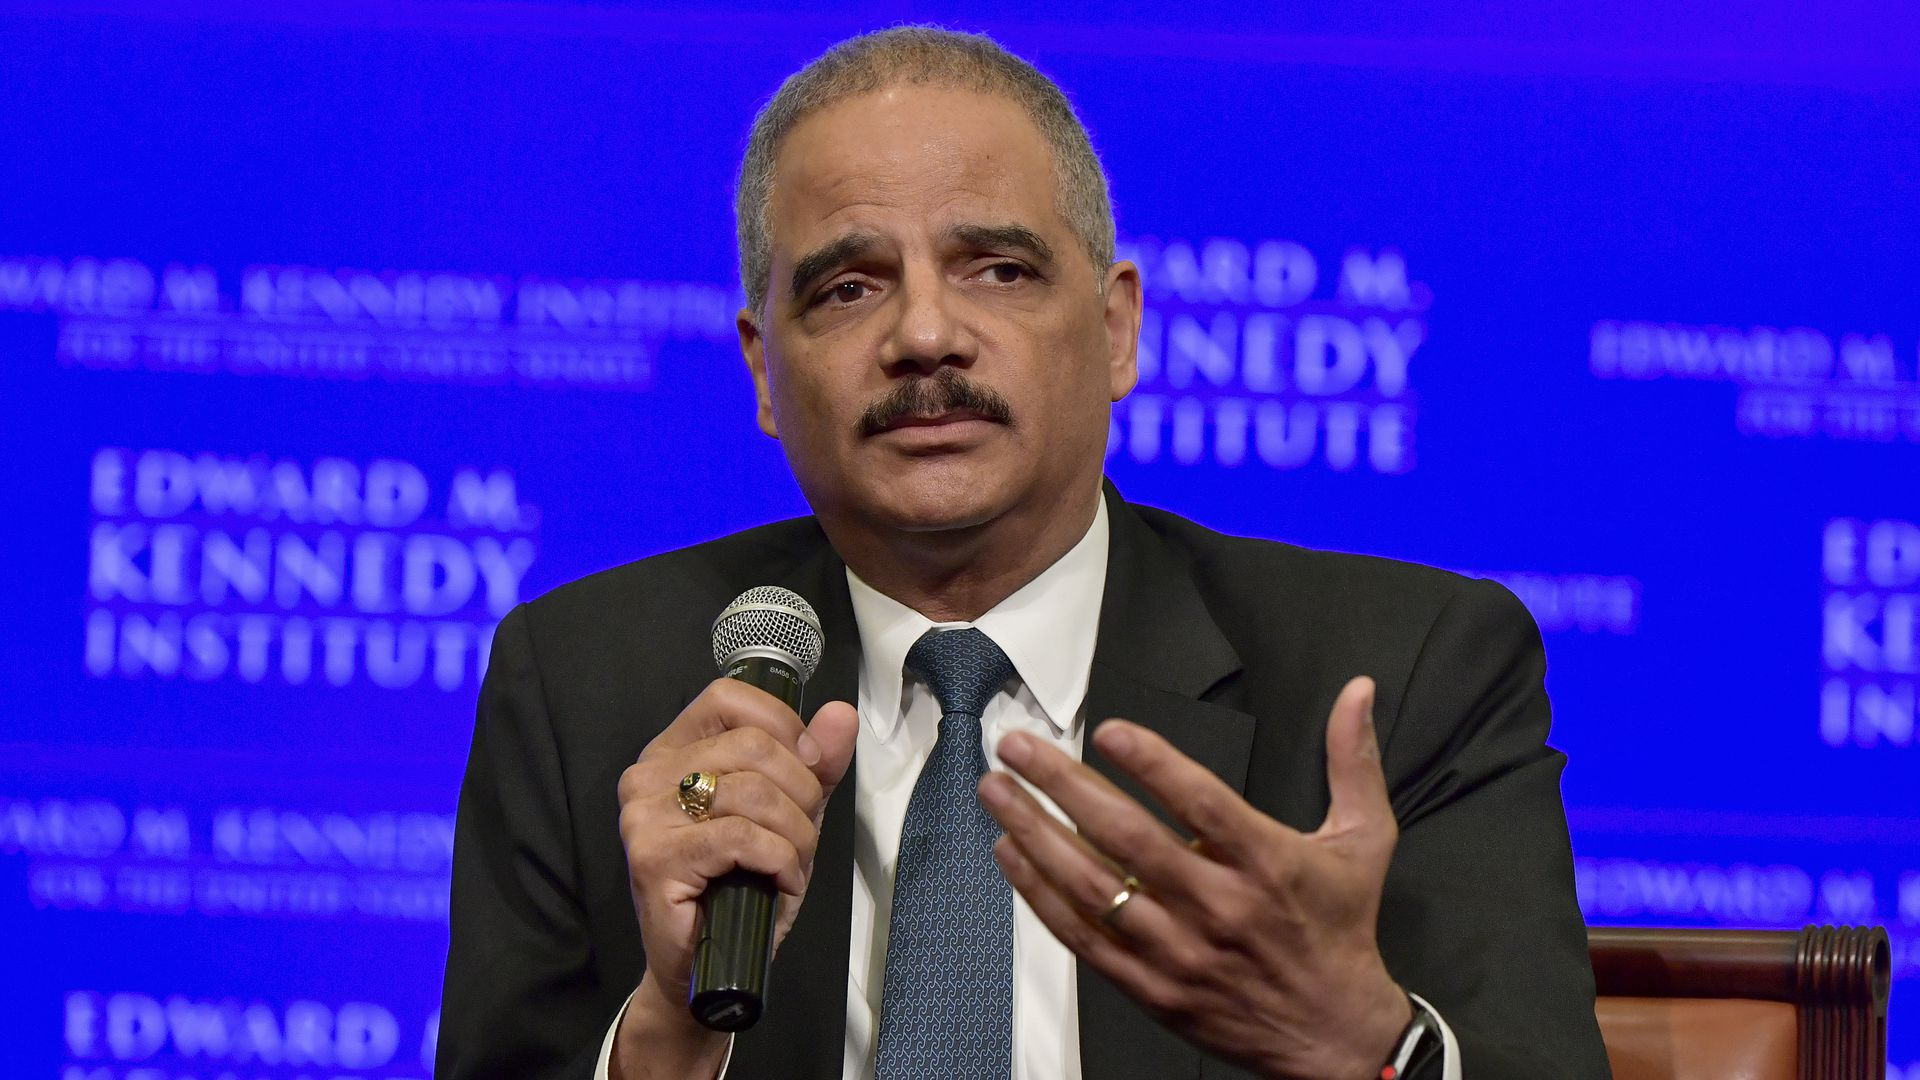 Eric Holder holding a microphone